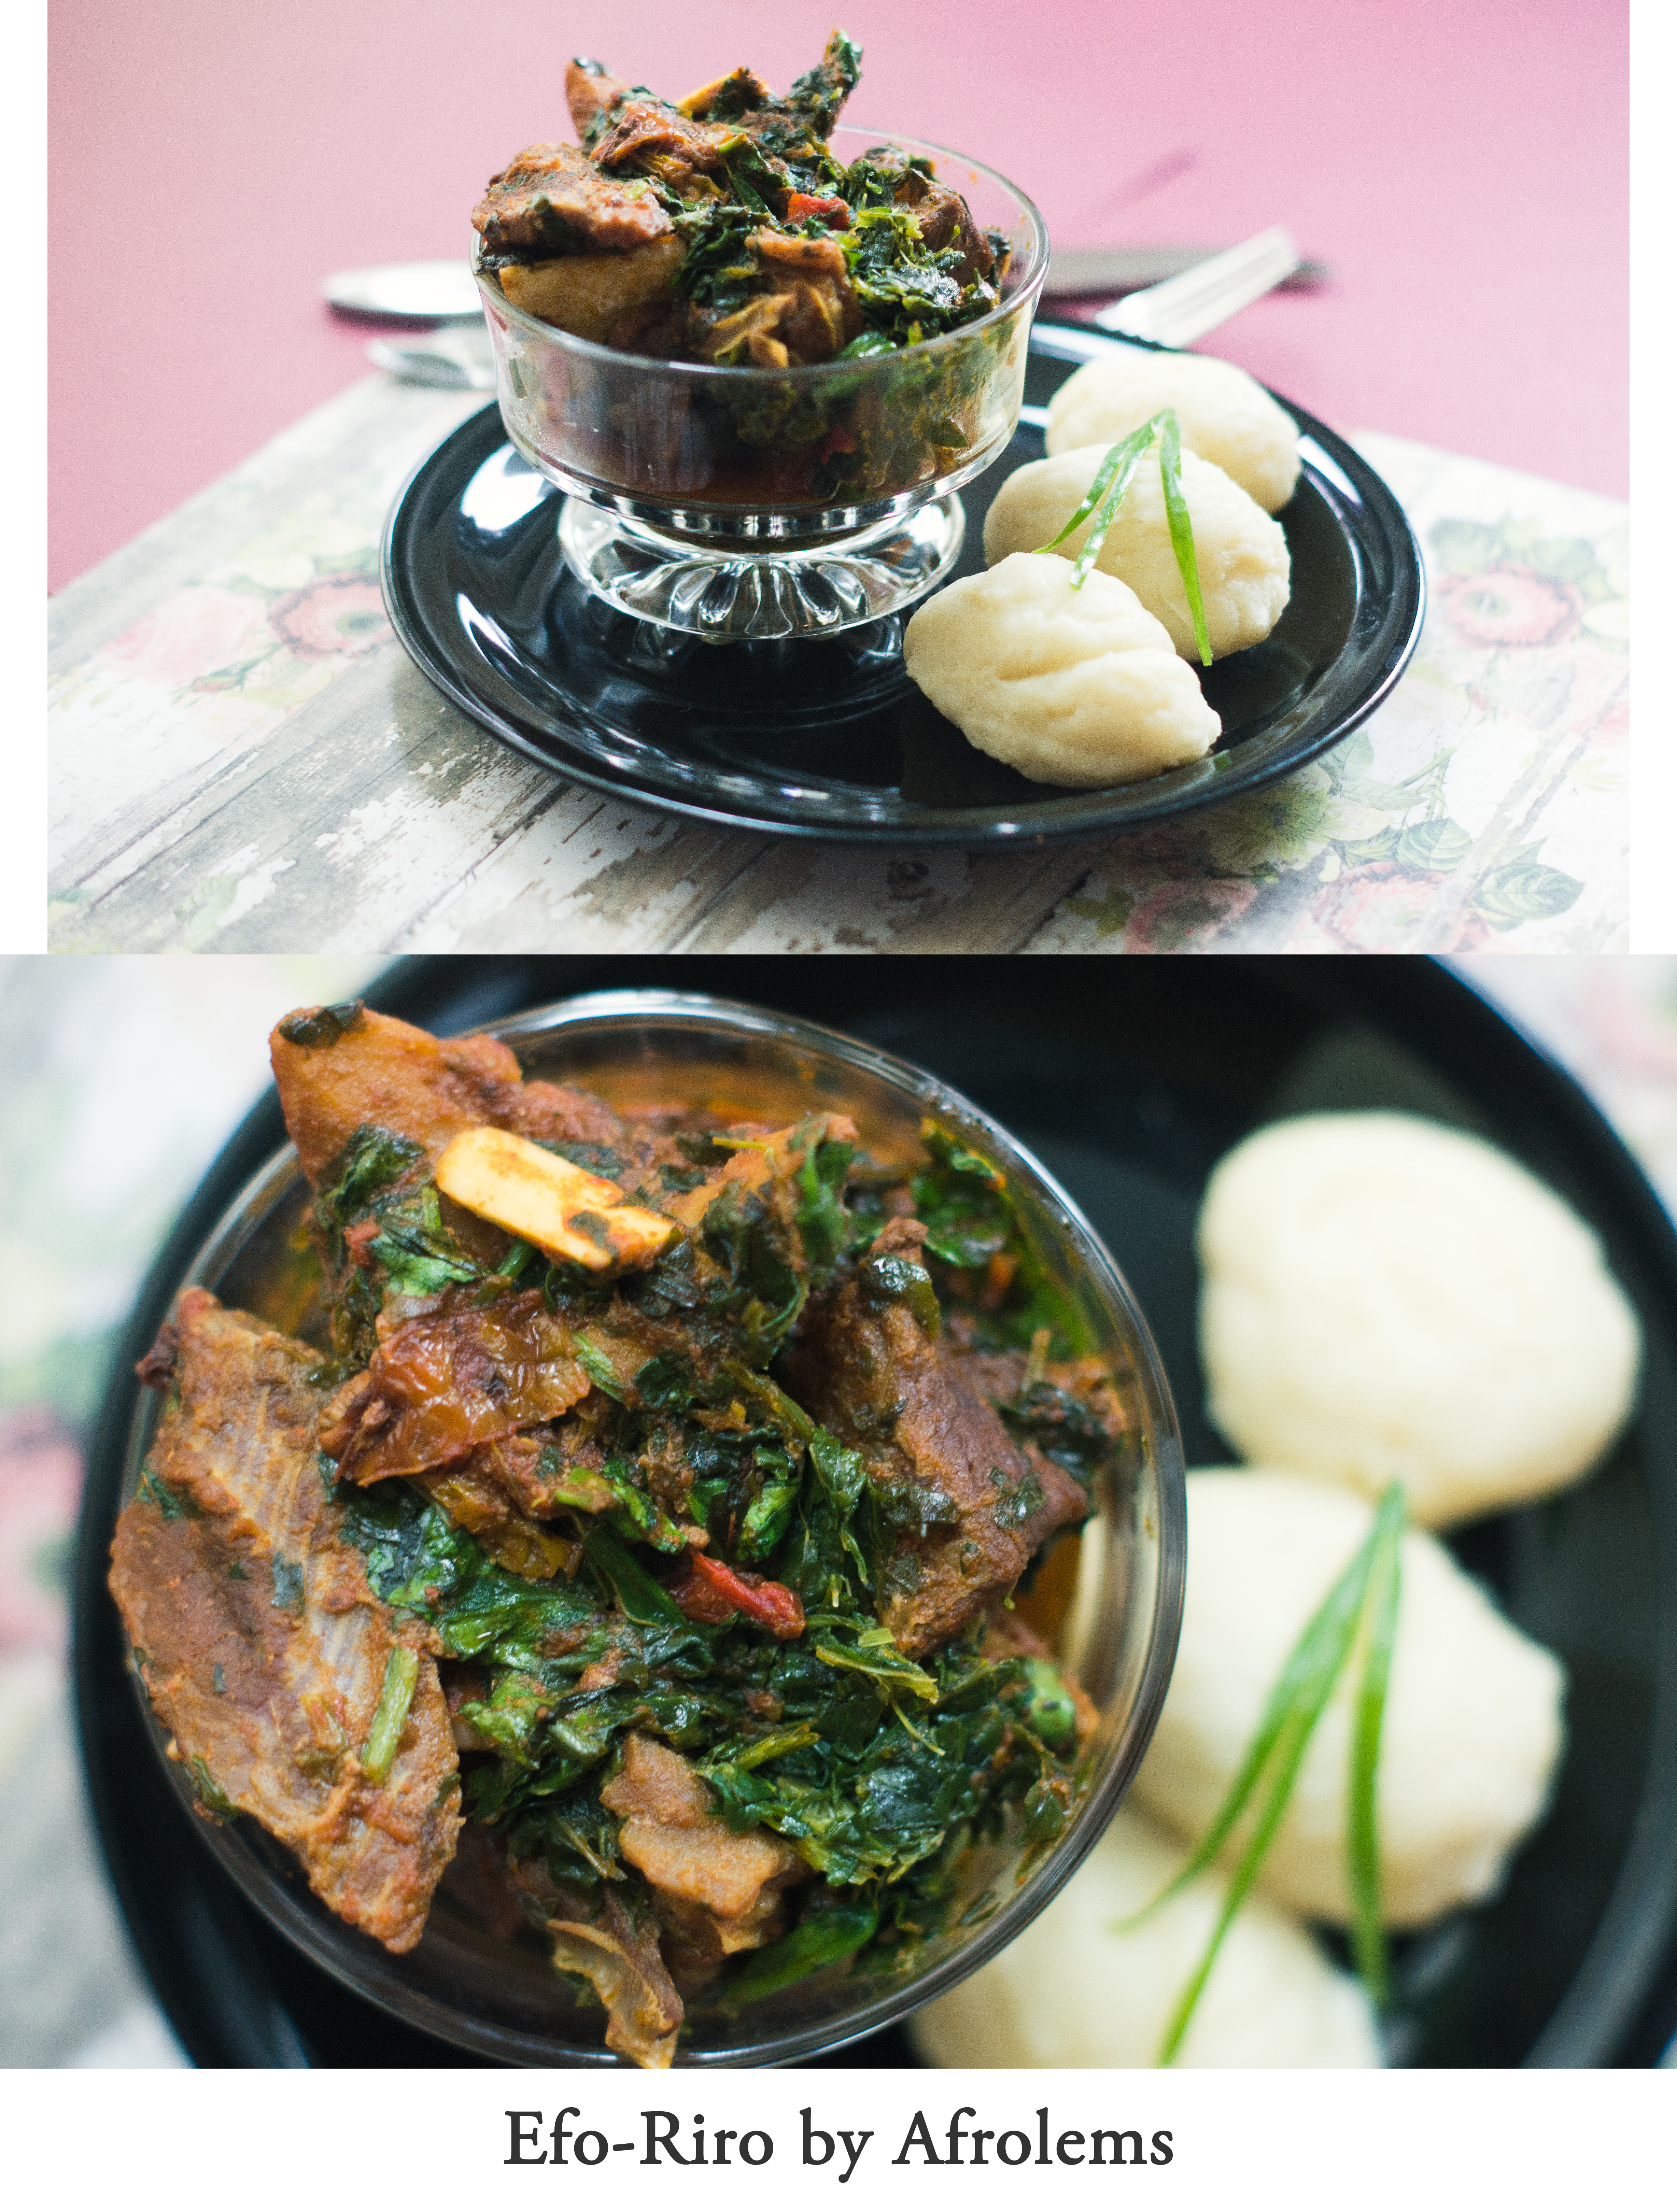 Nigerian recipe archives afrolems nigerian food blog efo riro nigerian soup recipe with pounded yam forumfinder Gallery